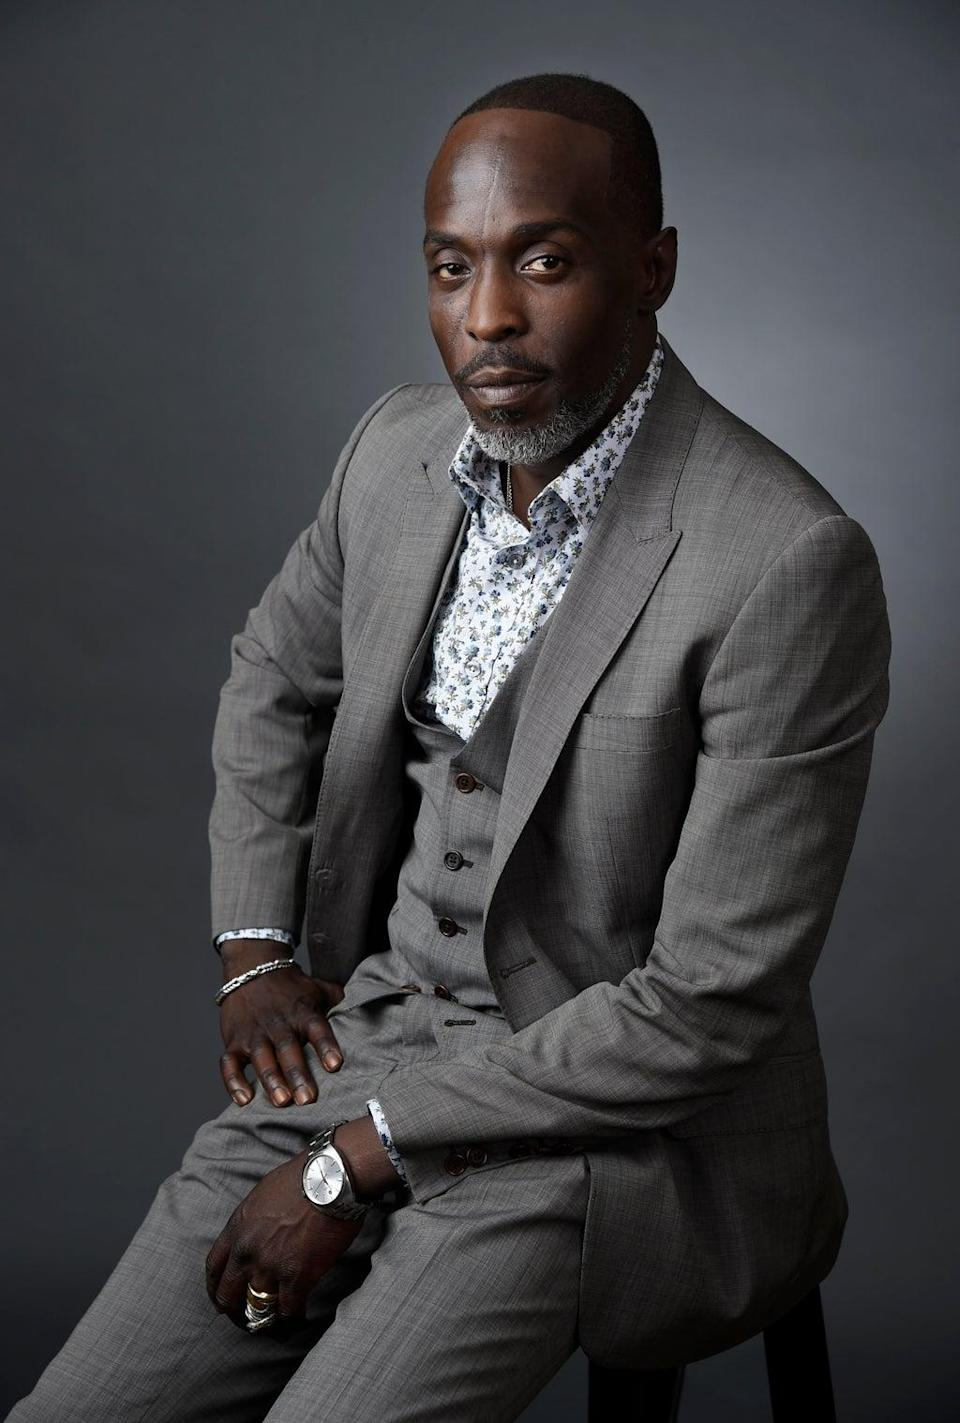 Spike Lee, Wendell Pierce and Aldis Hodge have led the tributes to The Wire actor Michael K Williams following his death aged 54 (Chris Pizzello/Invision/AP, File) (AP)